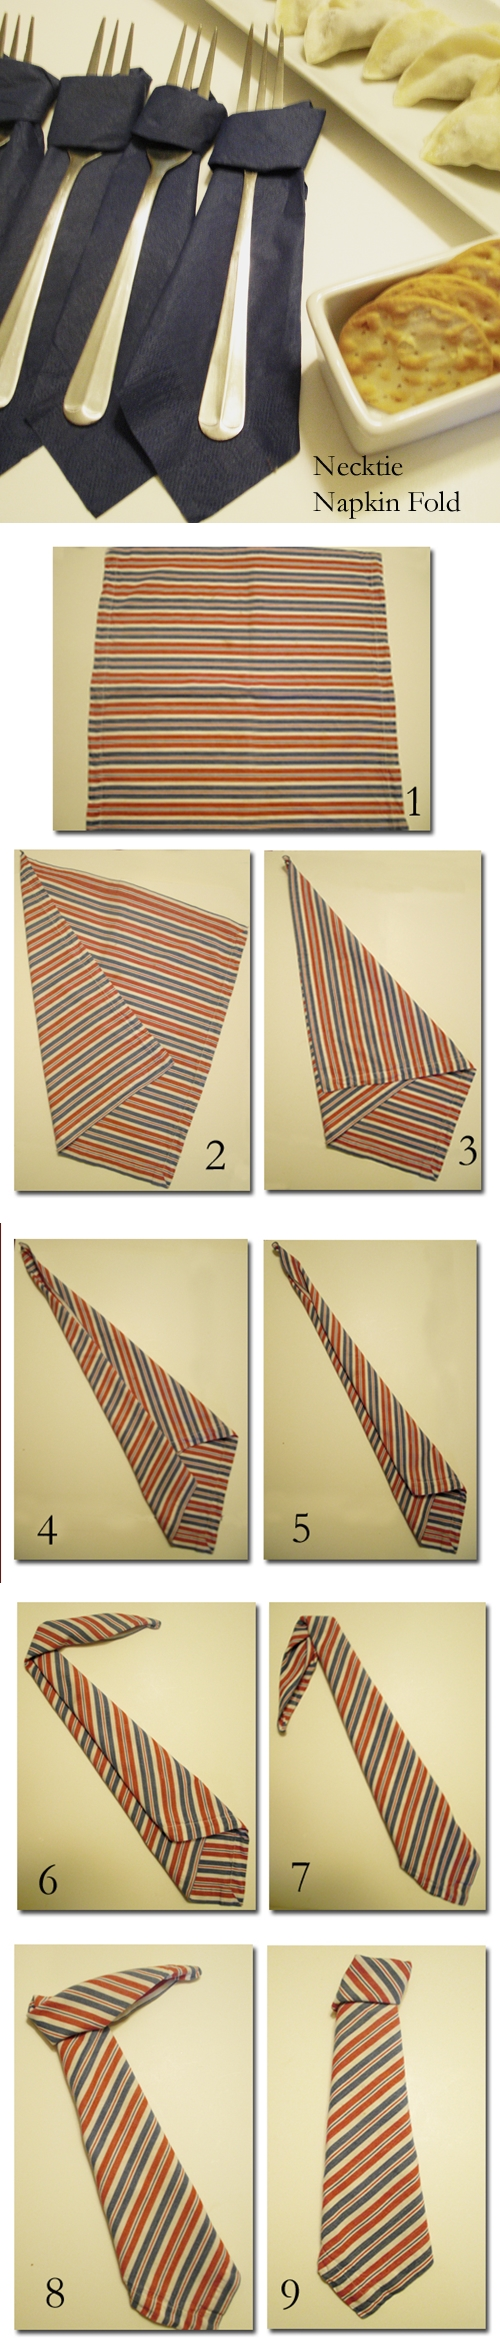 How to fold napkin in neck tie shape step by step DIY tutorial instructions